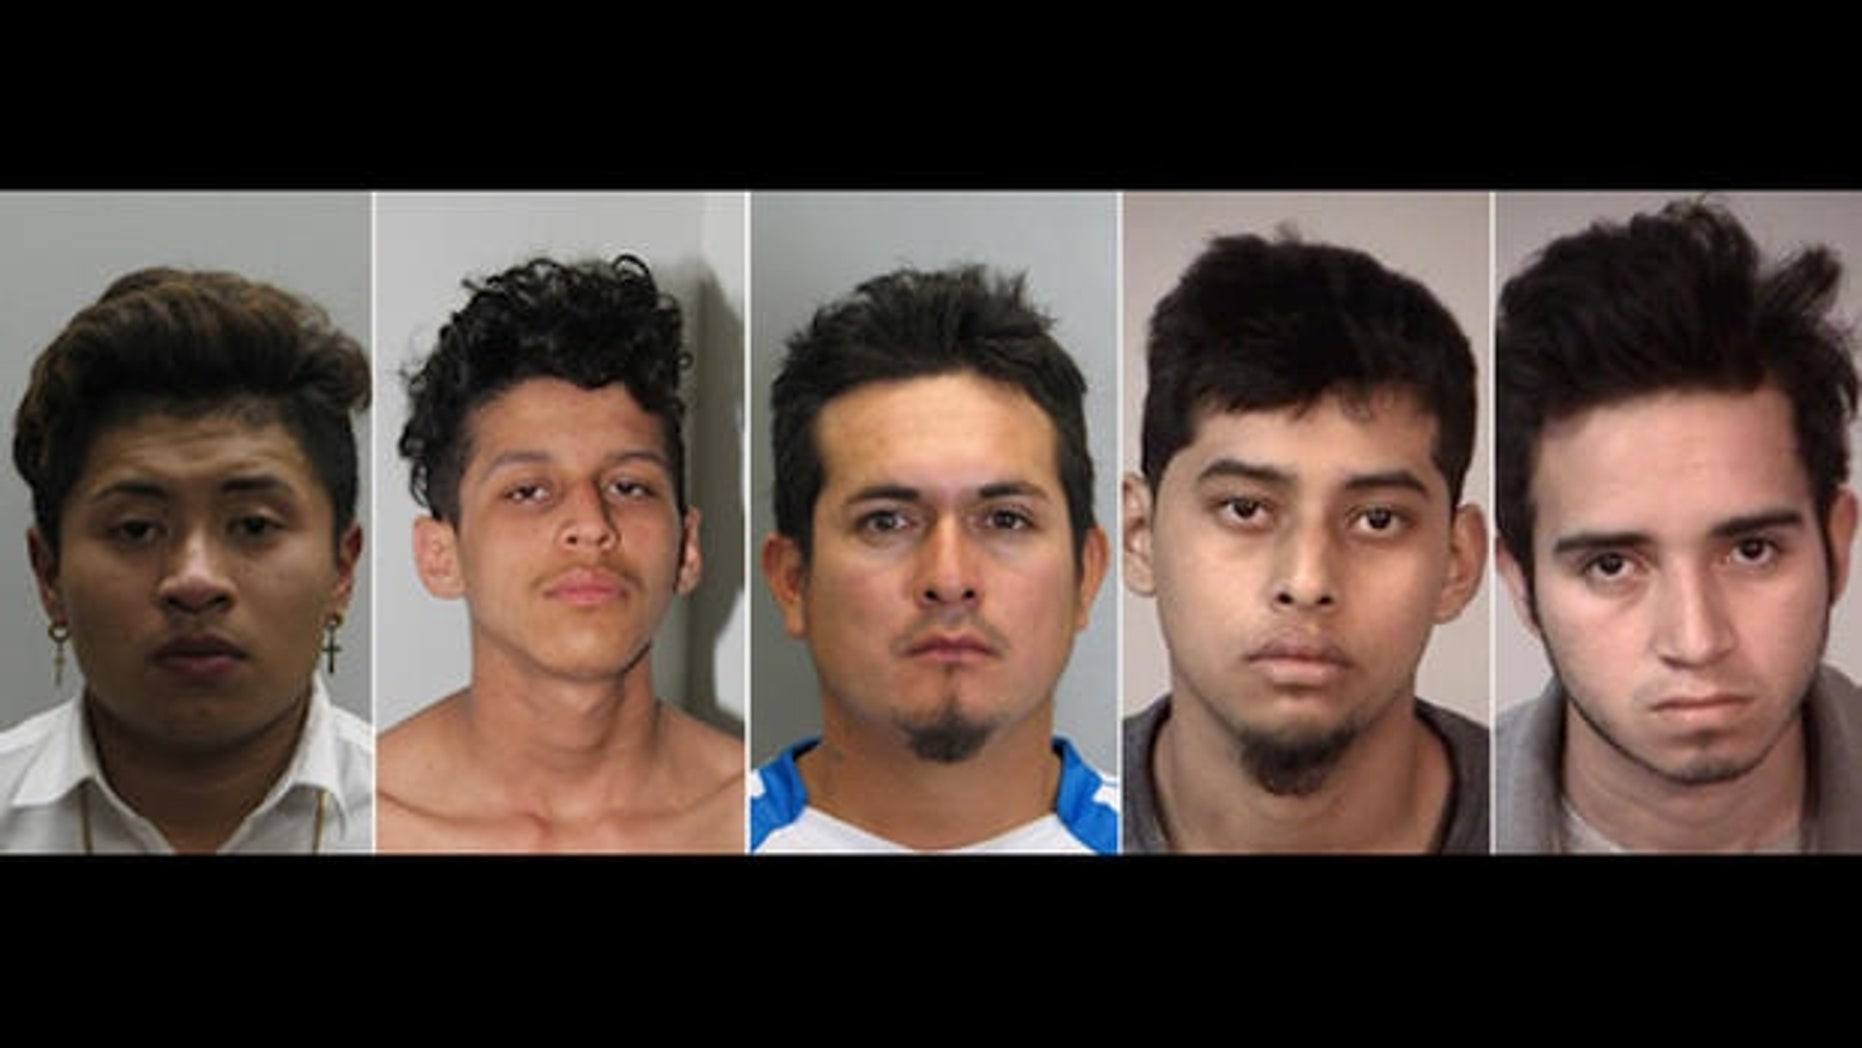 Mugshots for MS-13 gang members charged with murder this week: Jose Hernandez-Garcia, Christian Martinez-Ramirez, Jose Ordonez-Zometa, Kevin Rodriquez-Flores, Jonathan Castillo-Rivera.